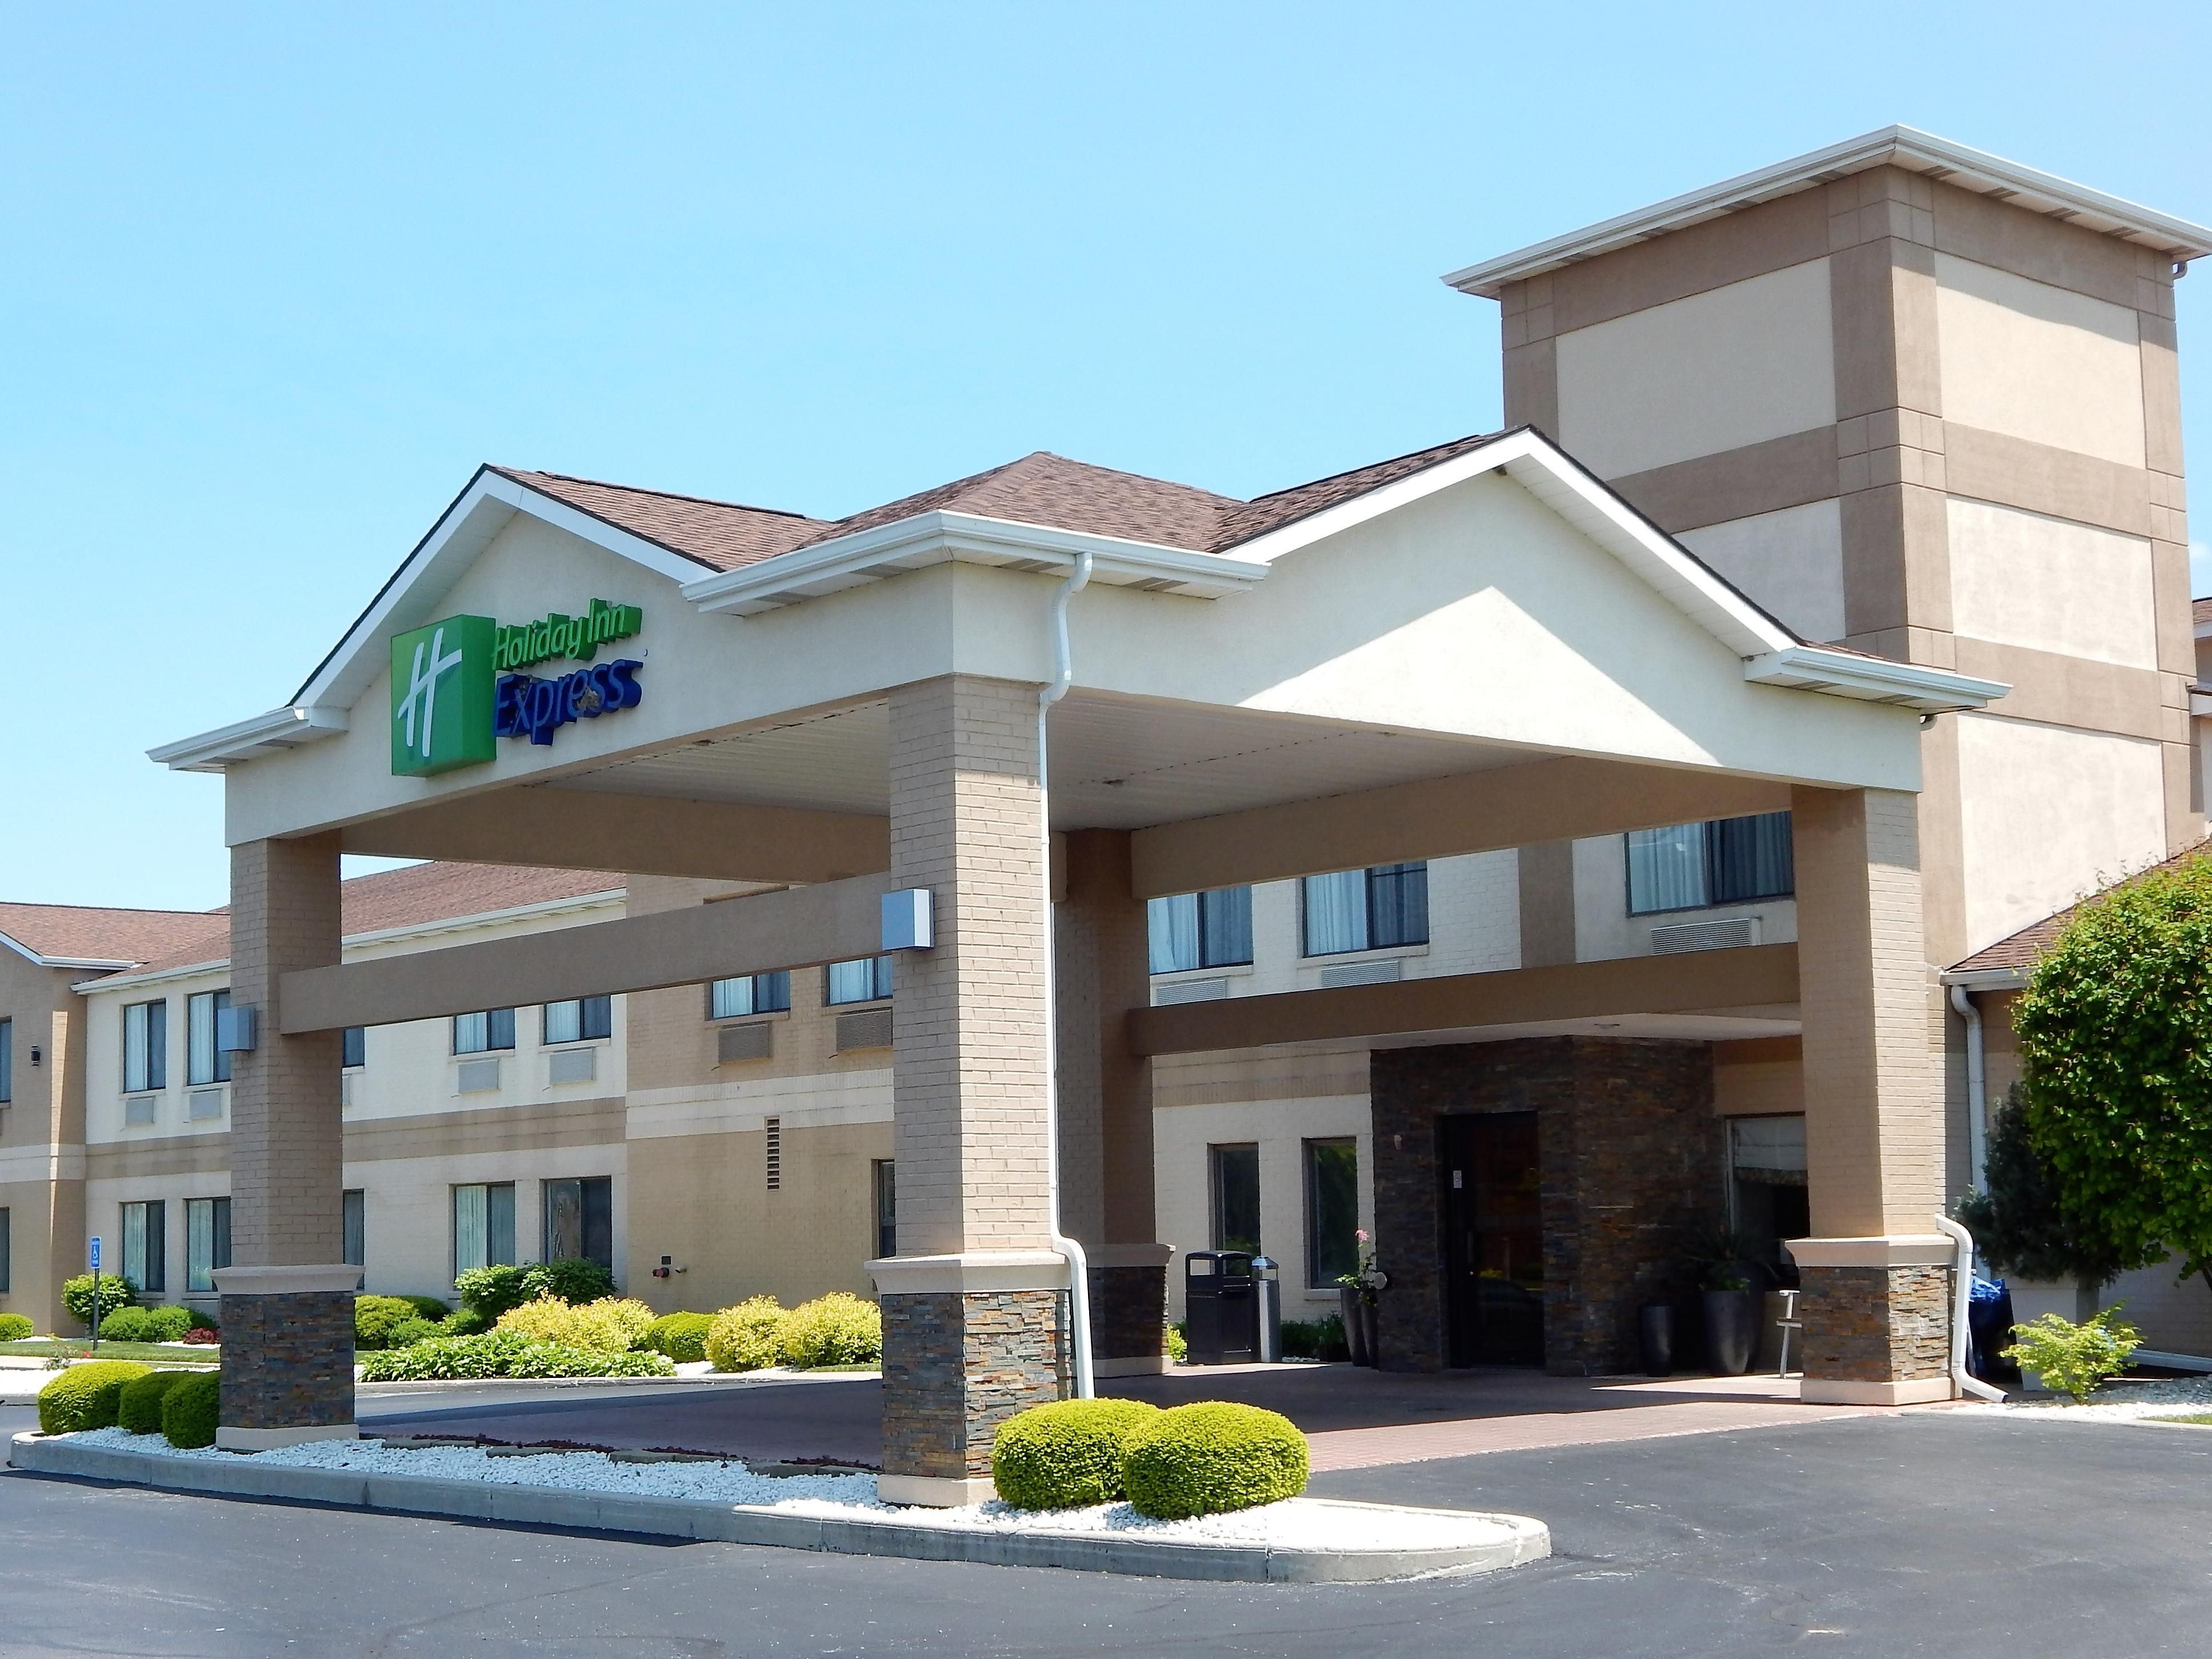 Welcome to the Holiday Inn Express-Celina